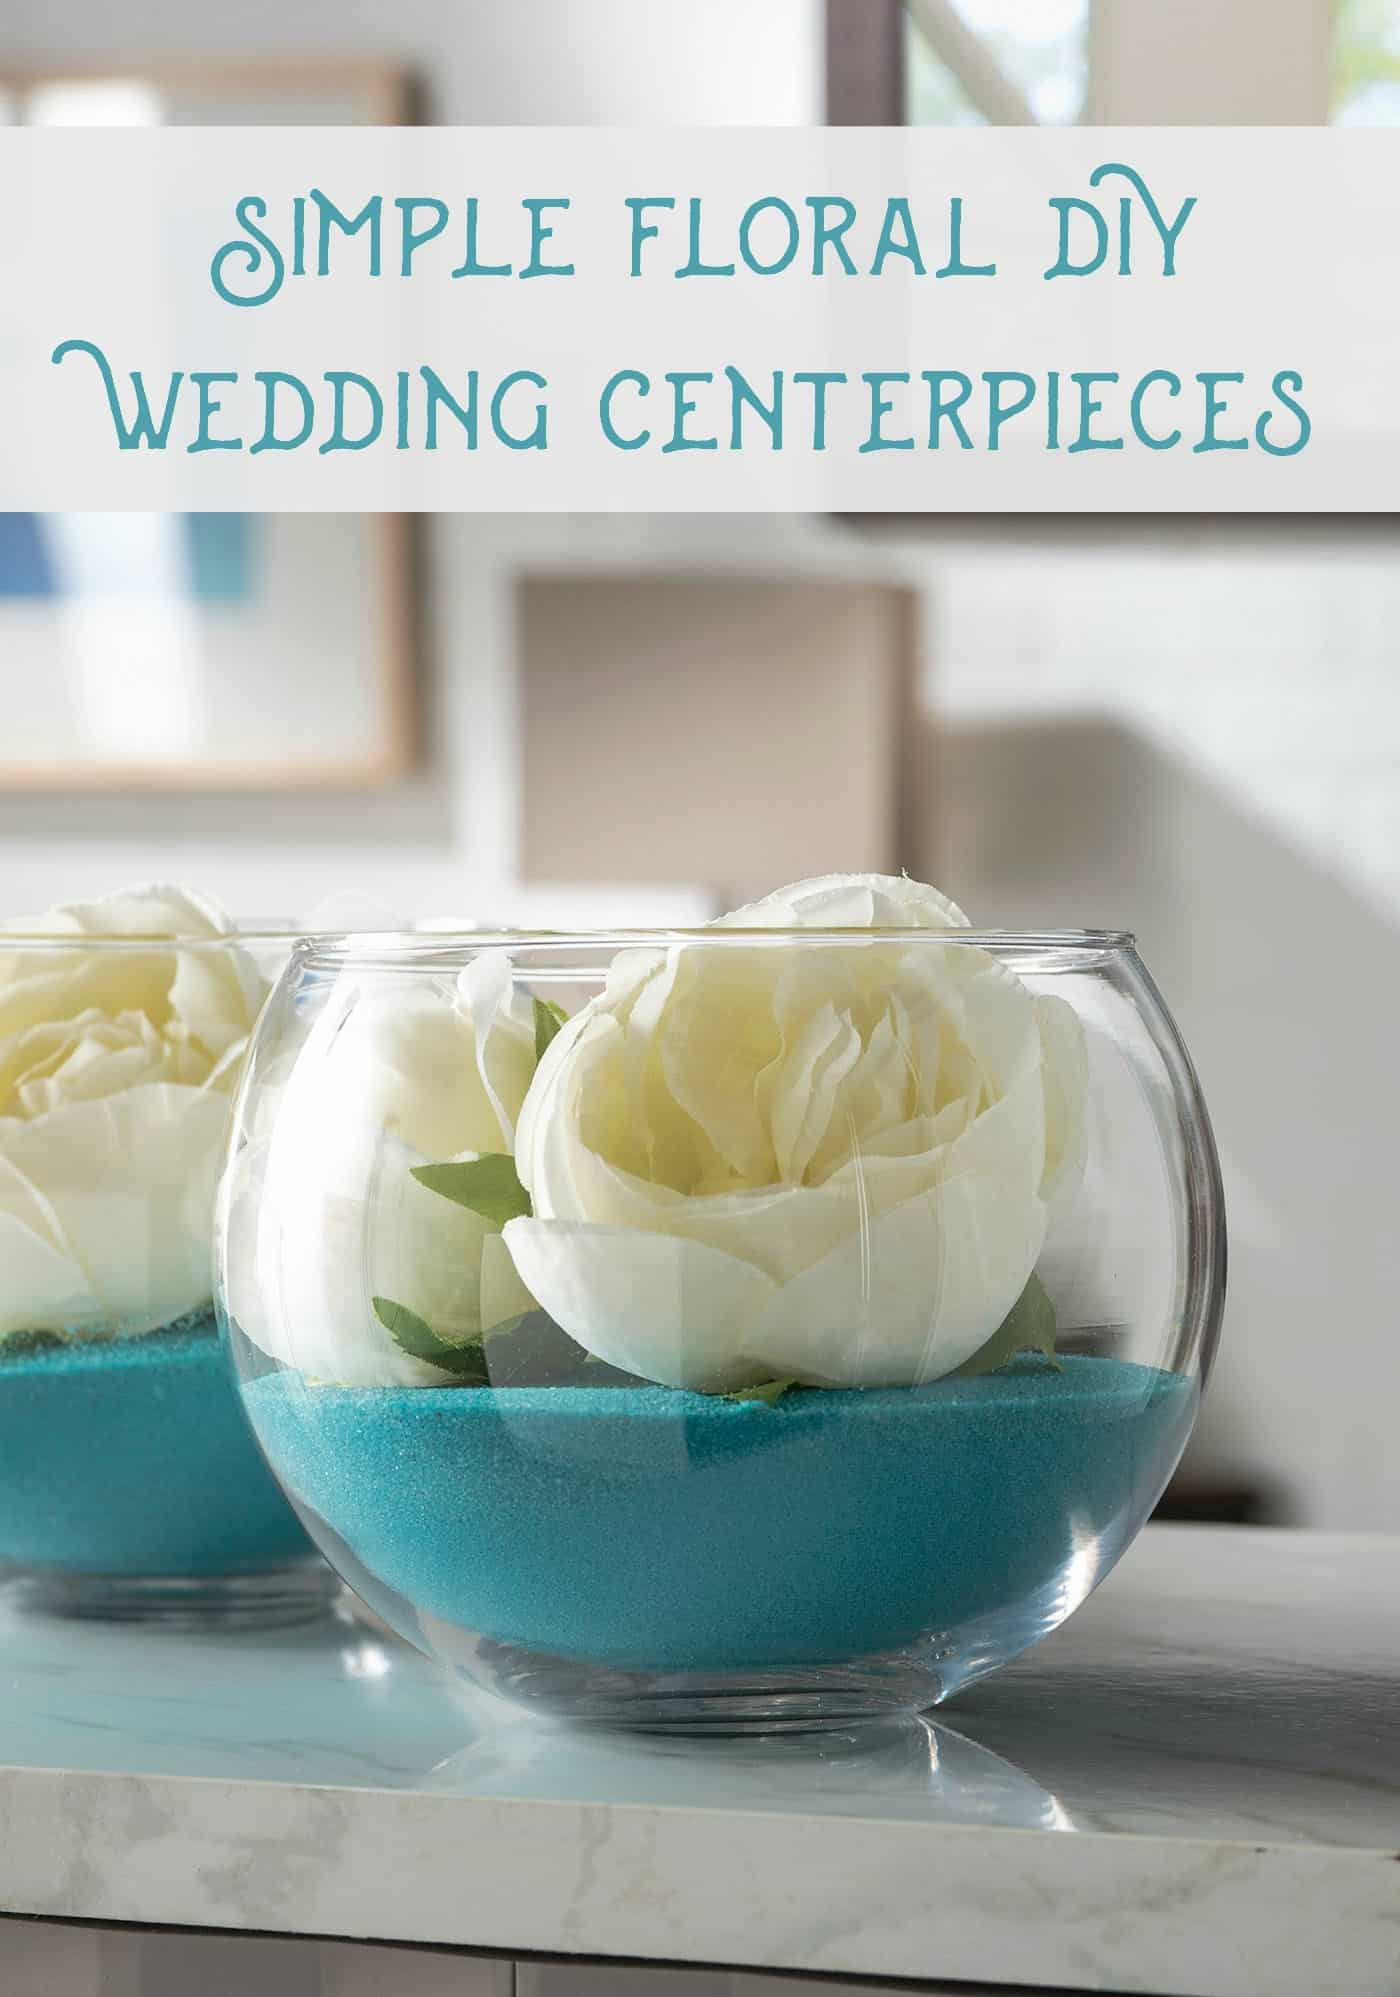 glowing floral diy wedding centerpieces centerpieces for wedding Learn how to make these simple and beautiful DIY wedding centerpieces in a matter of minutes